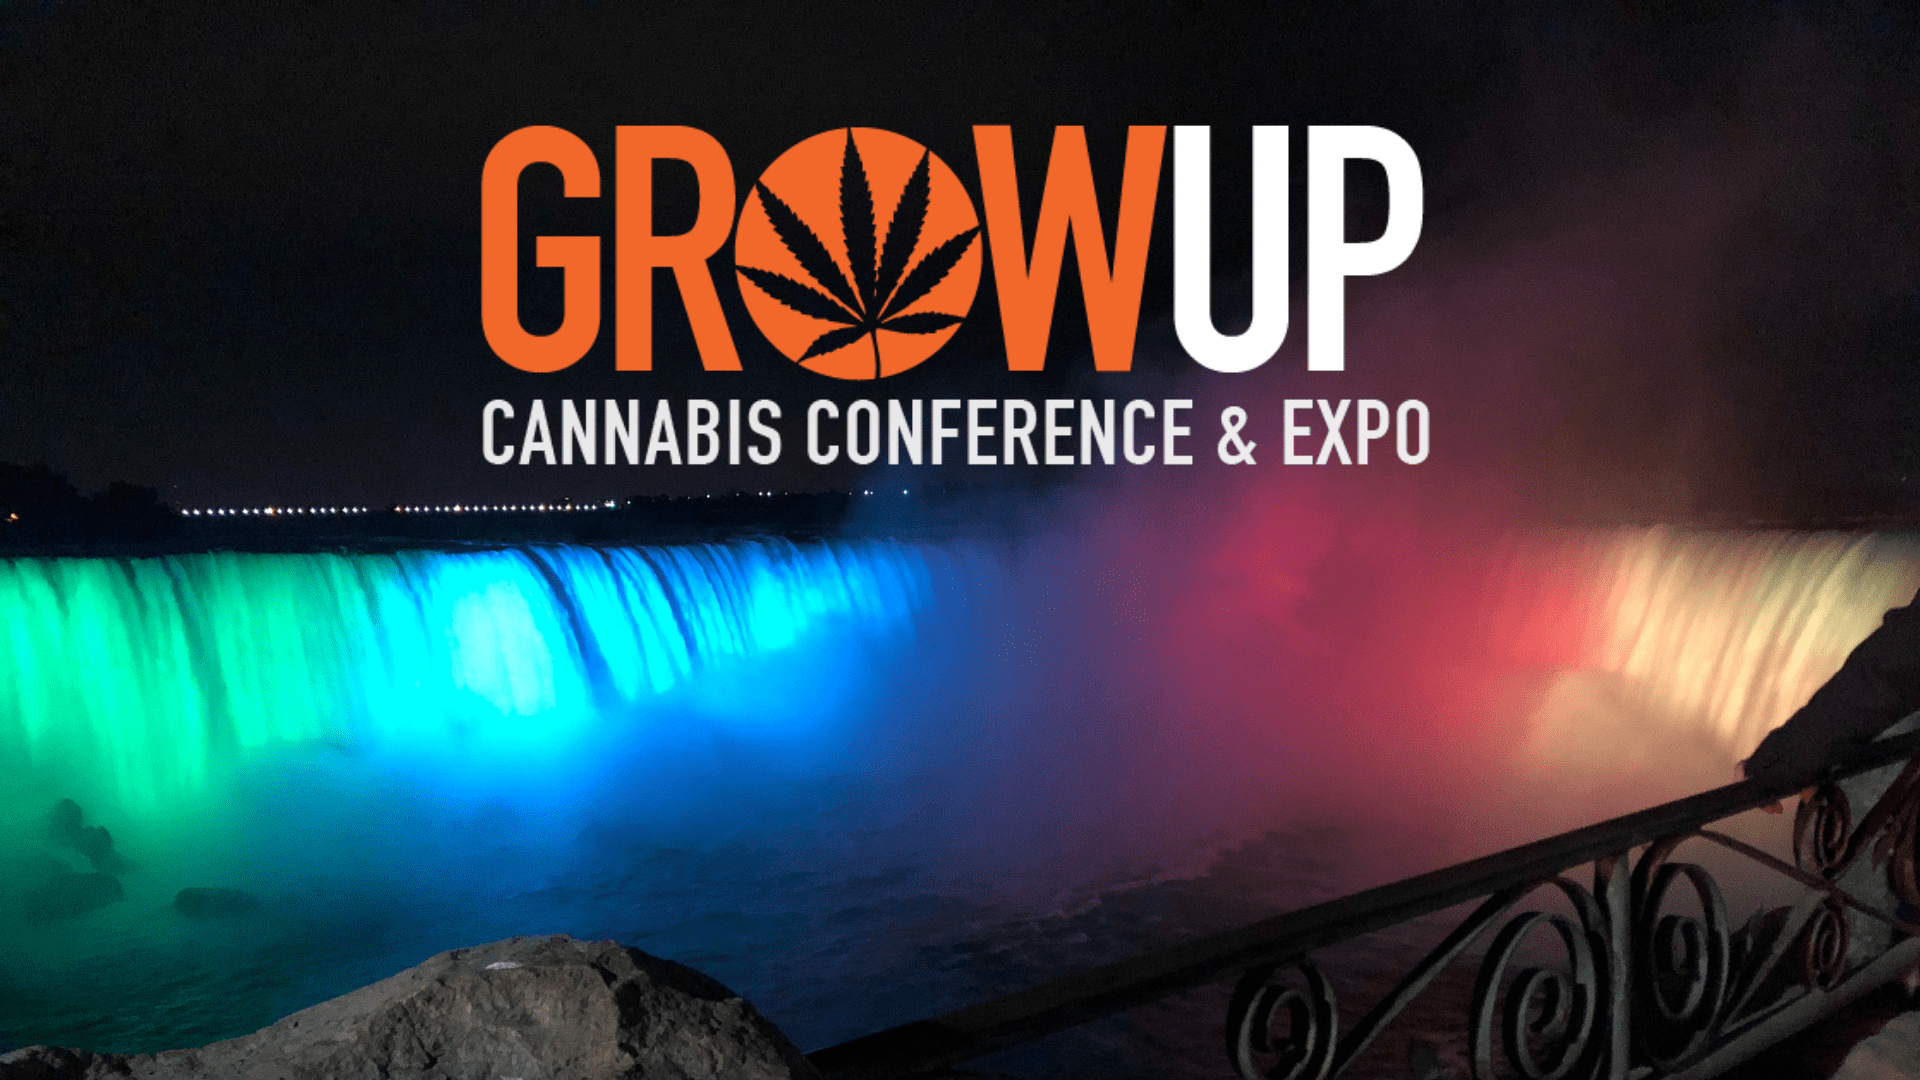 Kevin O'Leary Talks Cannabis | 2018 Grow Up Conference and Cannabis Expo Recap